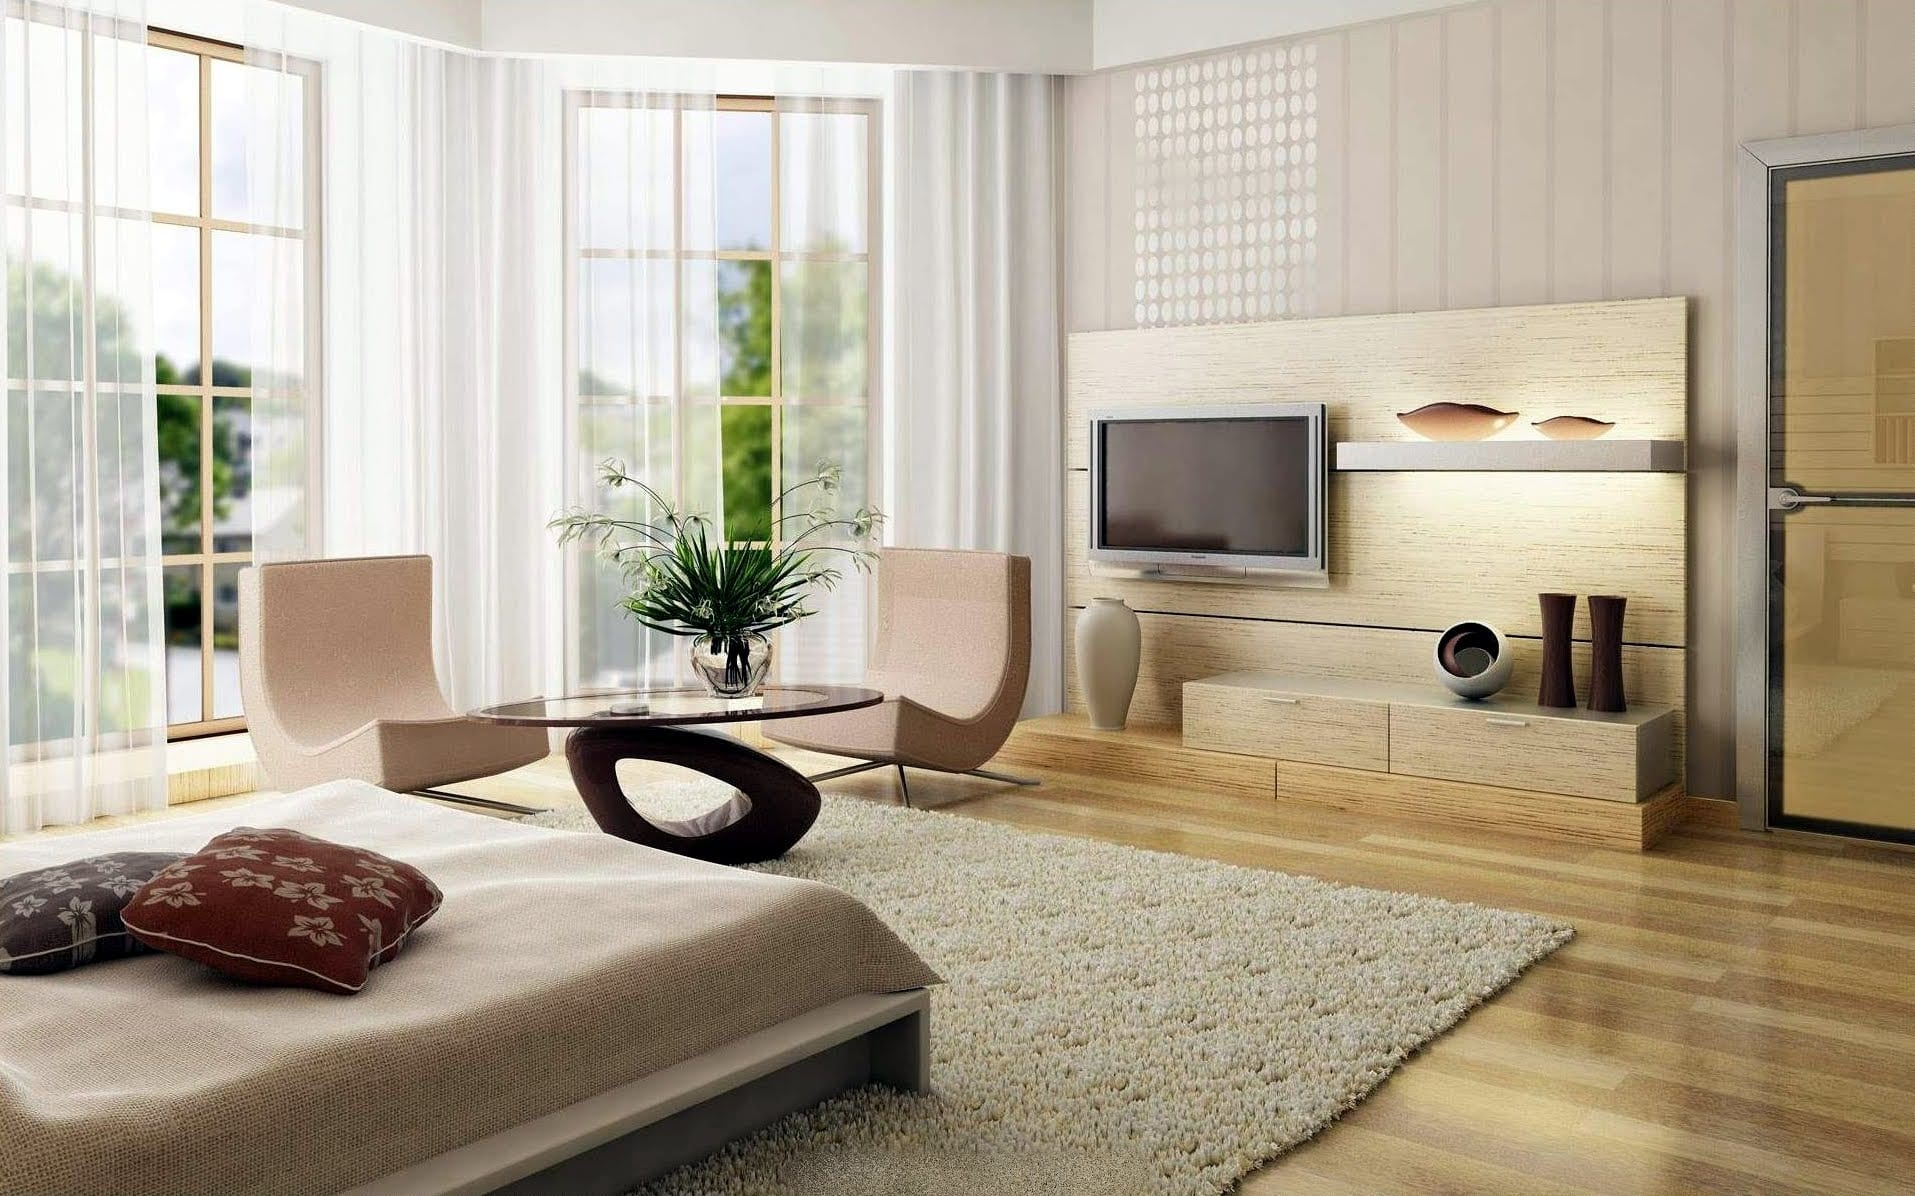 Brand Of Interior Design Ideas For Small Studio Apartments About Remodel Apartment Design Interior With Interior Design Ideas For Small Studio Apartments Apartment Design Easy Wpresidence Popular Customizable Real Estate Wordpress Theme